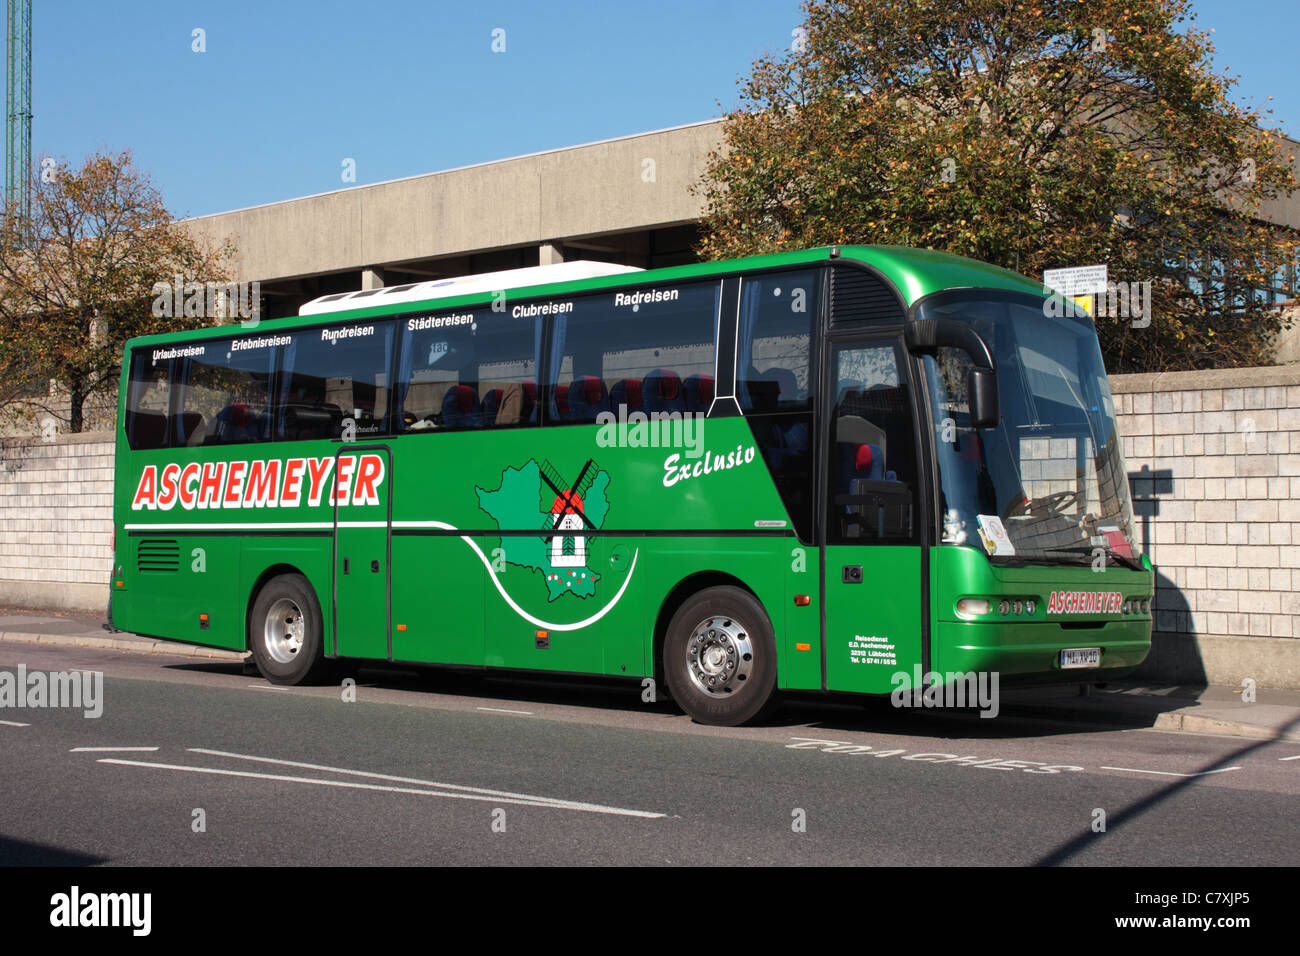 10m Neoplan Jetliner Coach belonging to Aschemeyer Coaches of Lubbecke Germany parked in Portsmouth Hampshire UK - Stock Image